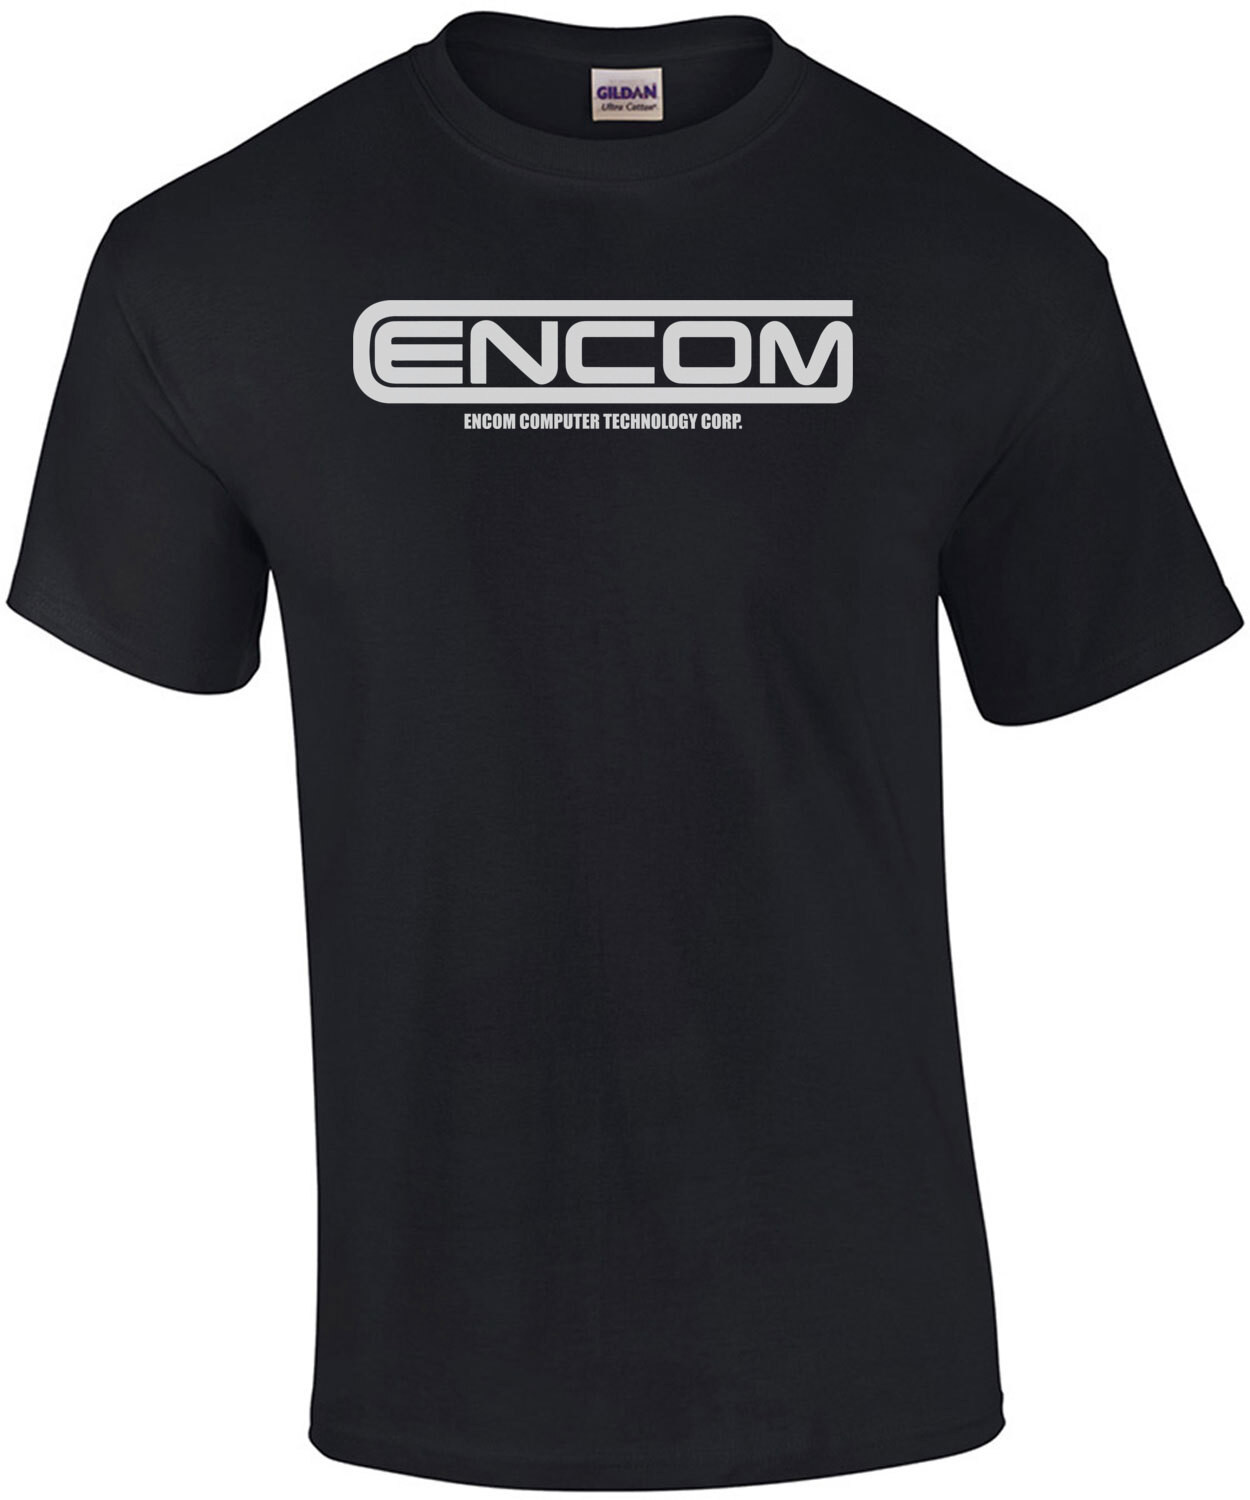 Encom - Encome Computer Technology Corp. Tron 80's T-Shirt